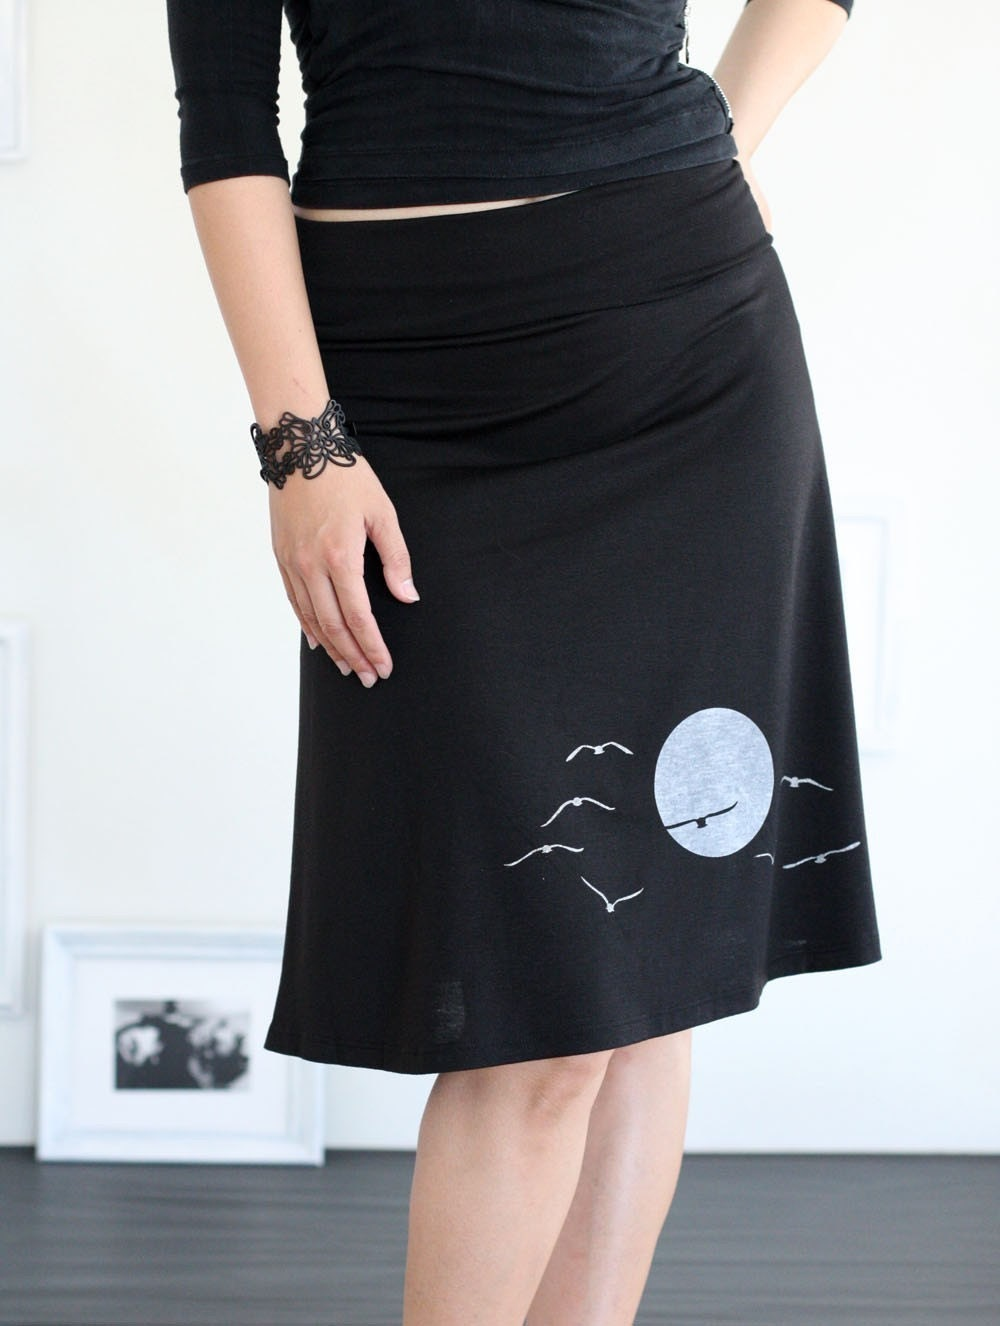 jersey skirts pull on knit skirt by zoeslollipop